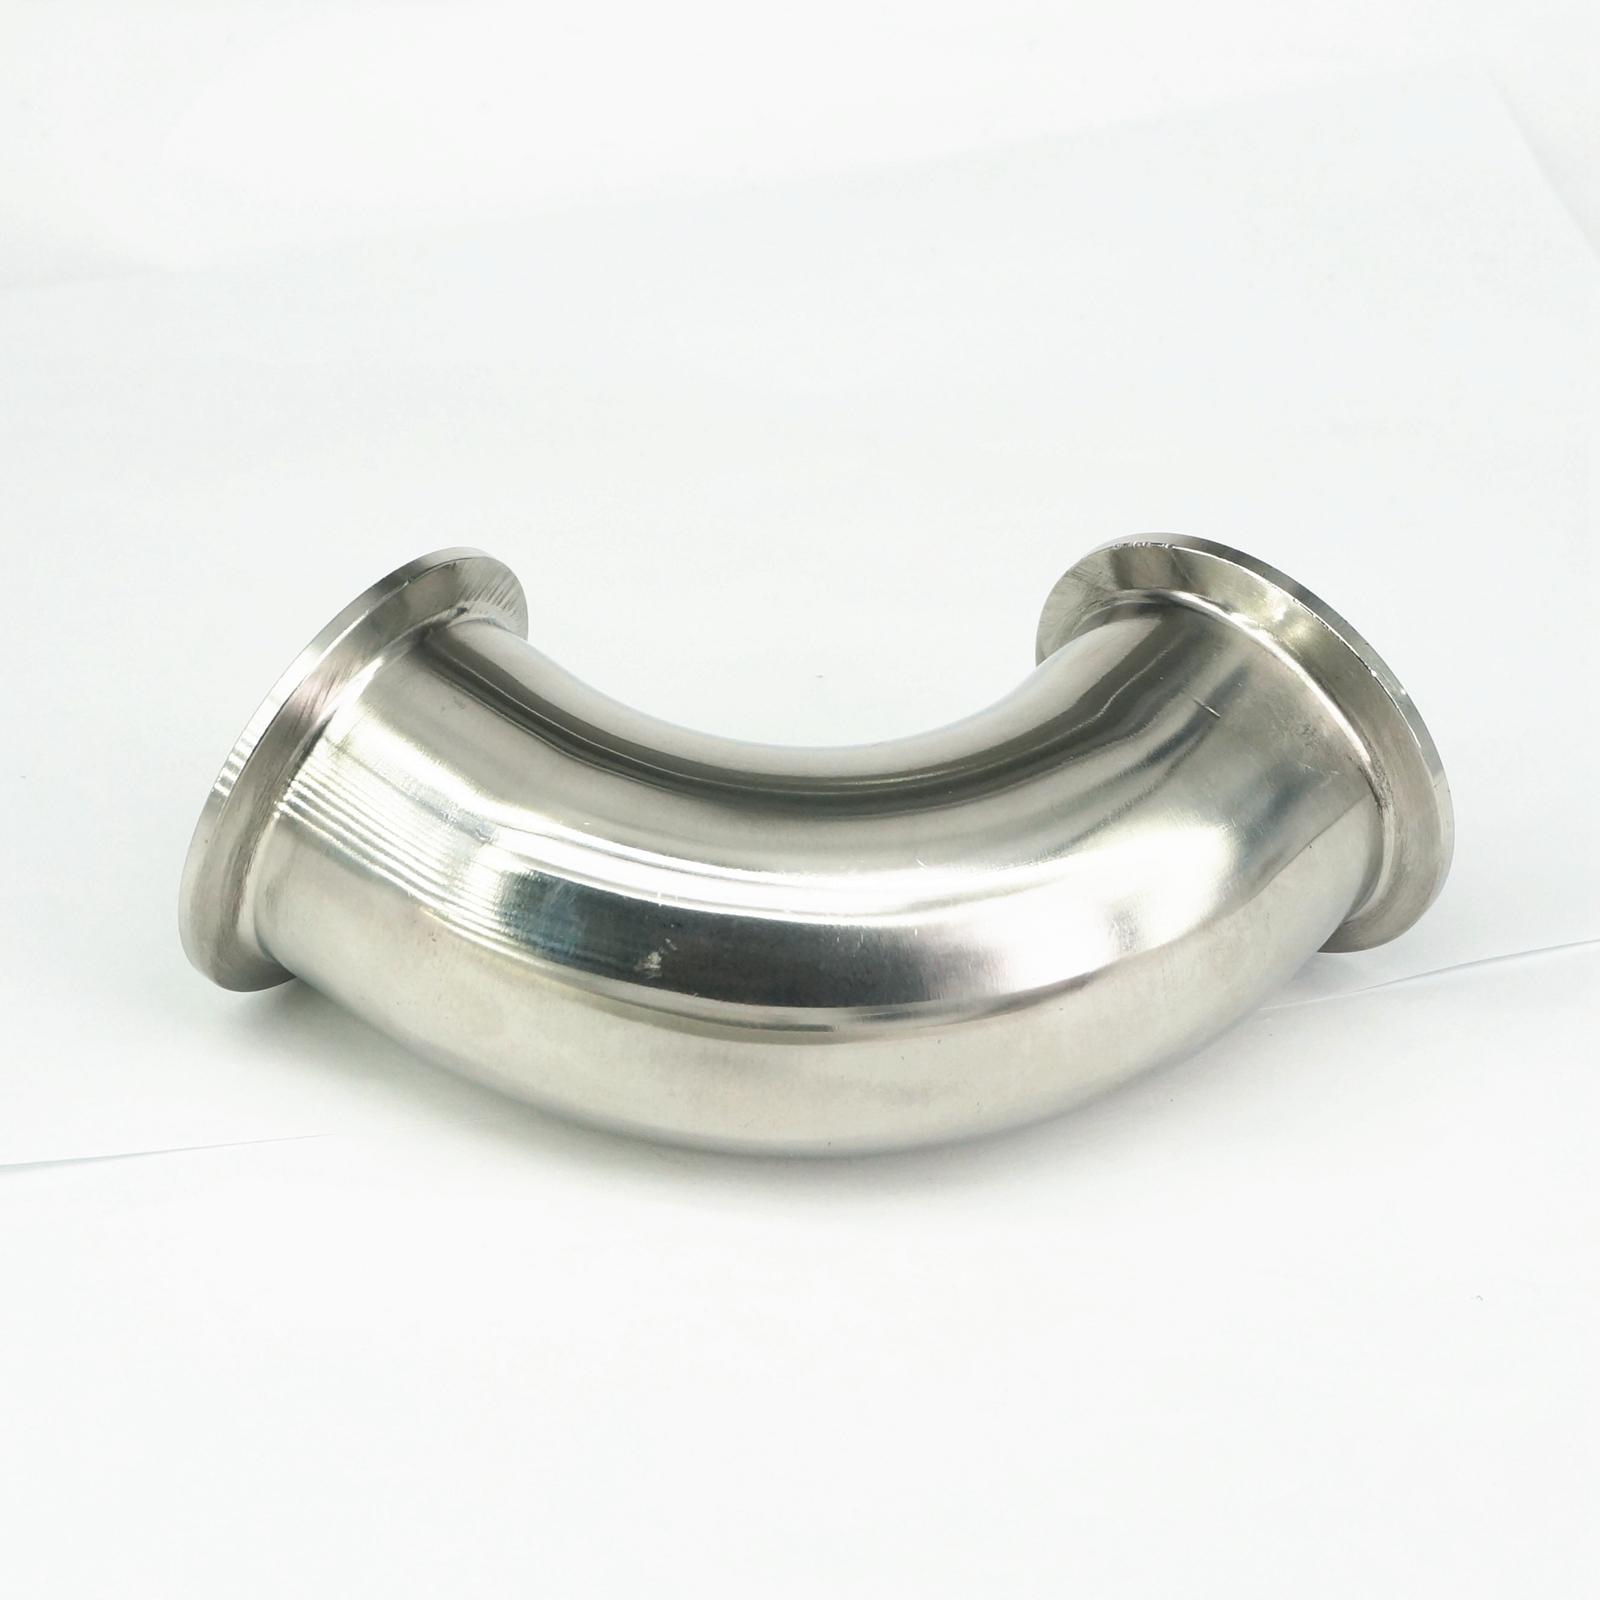 2 Tri Clamp Sanitary 90 Degree Elbow 51mm Pipe OD 304 Stainless Steel Fitting 64mm Feerule OD For Homebrew 273mm od sanitary weld on 286mm ferrule tri clamp stainless steel welding pipe fitting ss304 sw 273 page 2